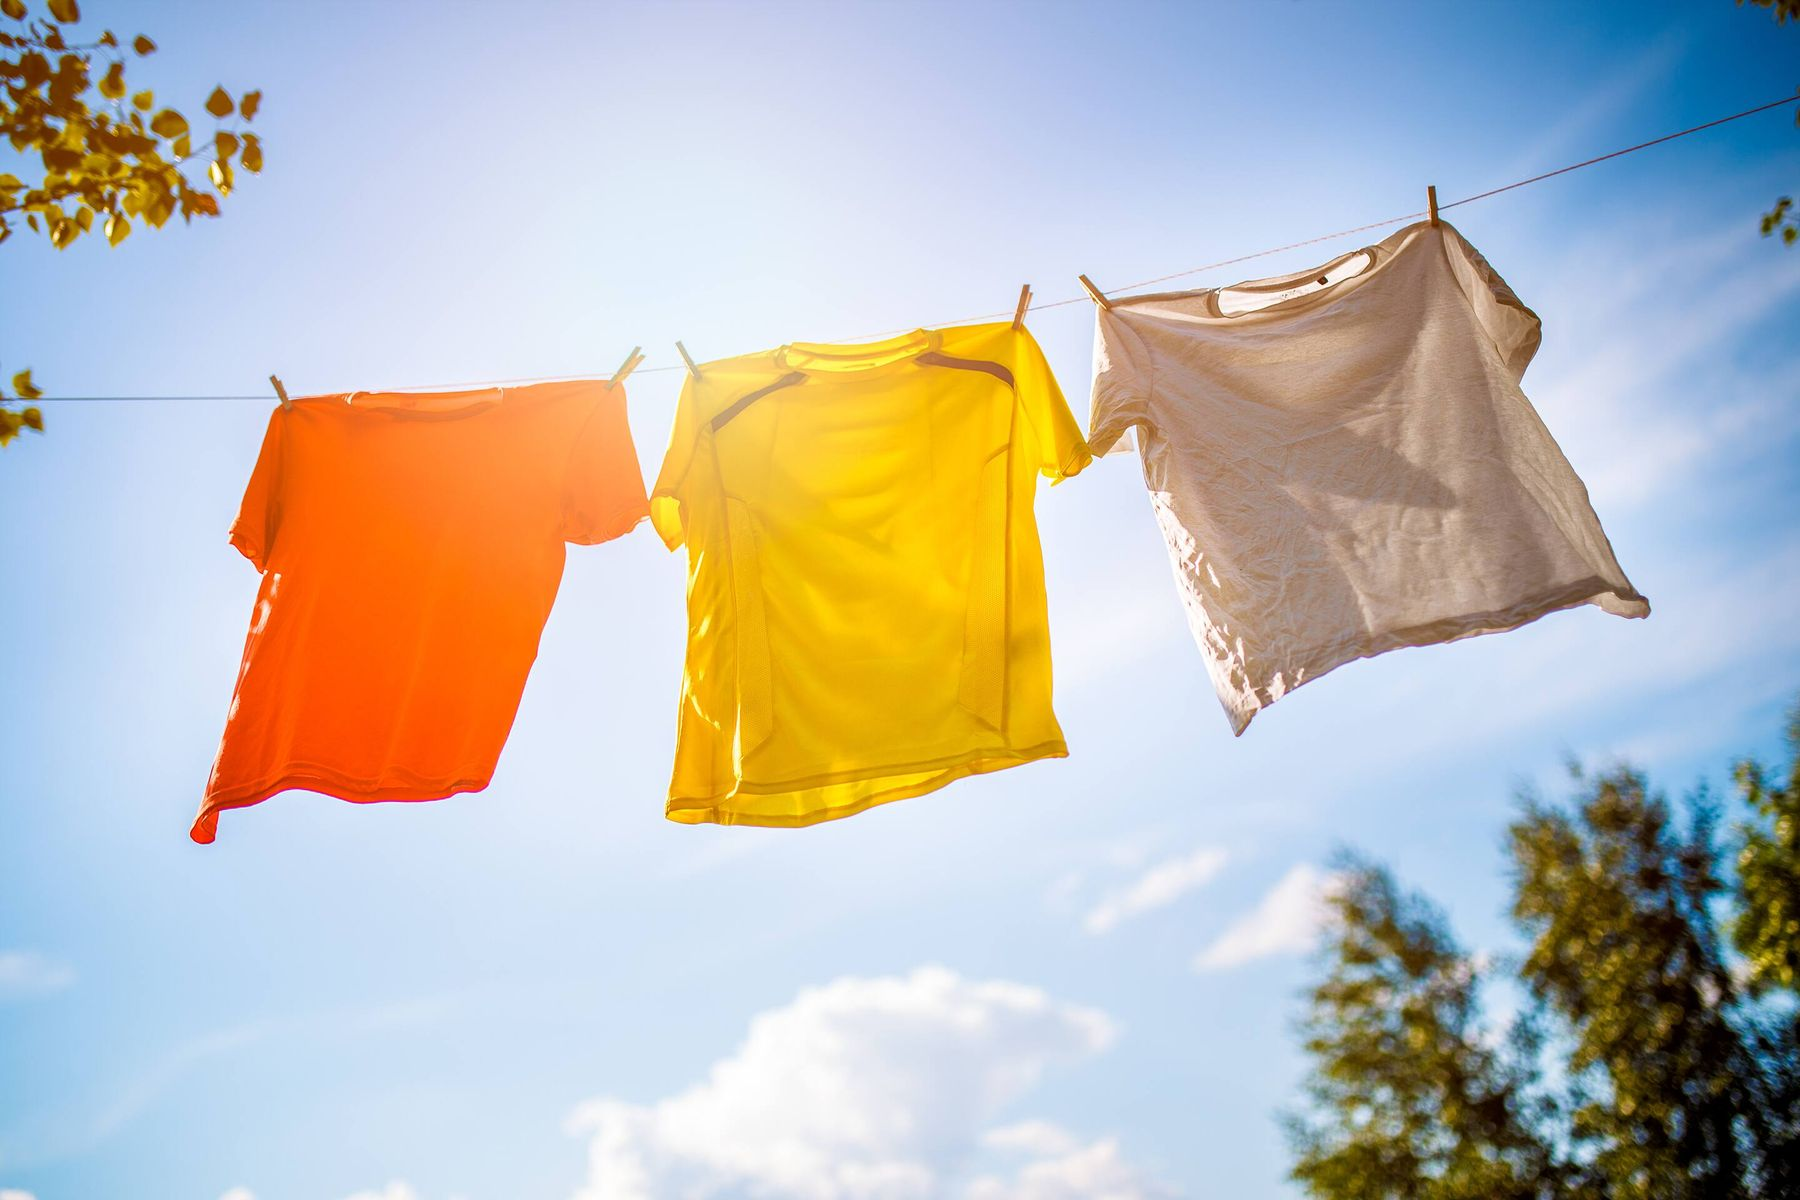 Here's How to Decide Between Machine-Drying or Air-Drying Your Cotton Clothes